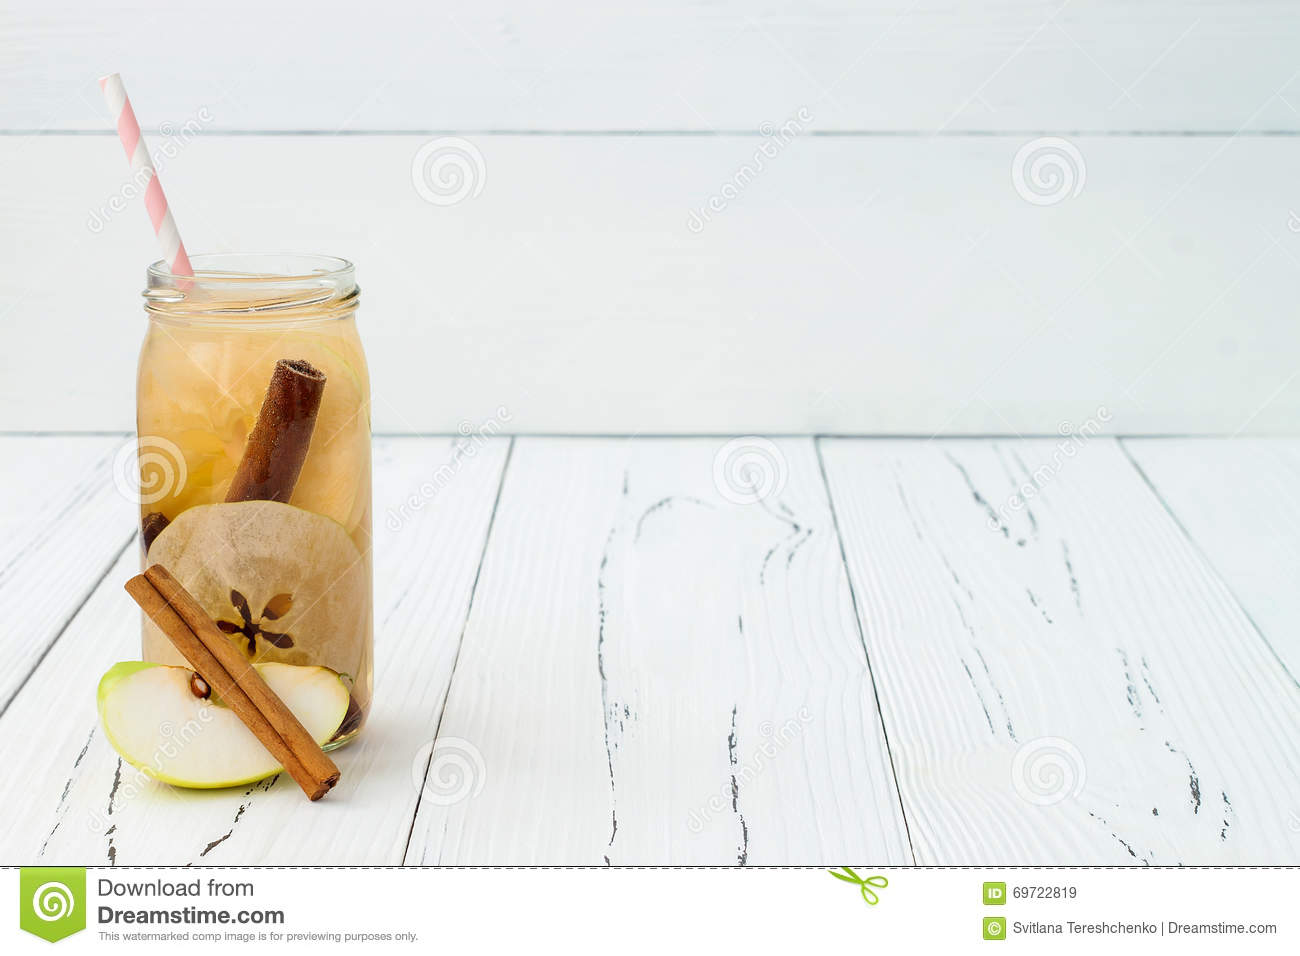 Detox fruit infused flavored water. Refreshing summer homemade cocktail. Clean eating. Copy space background